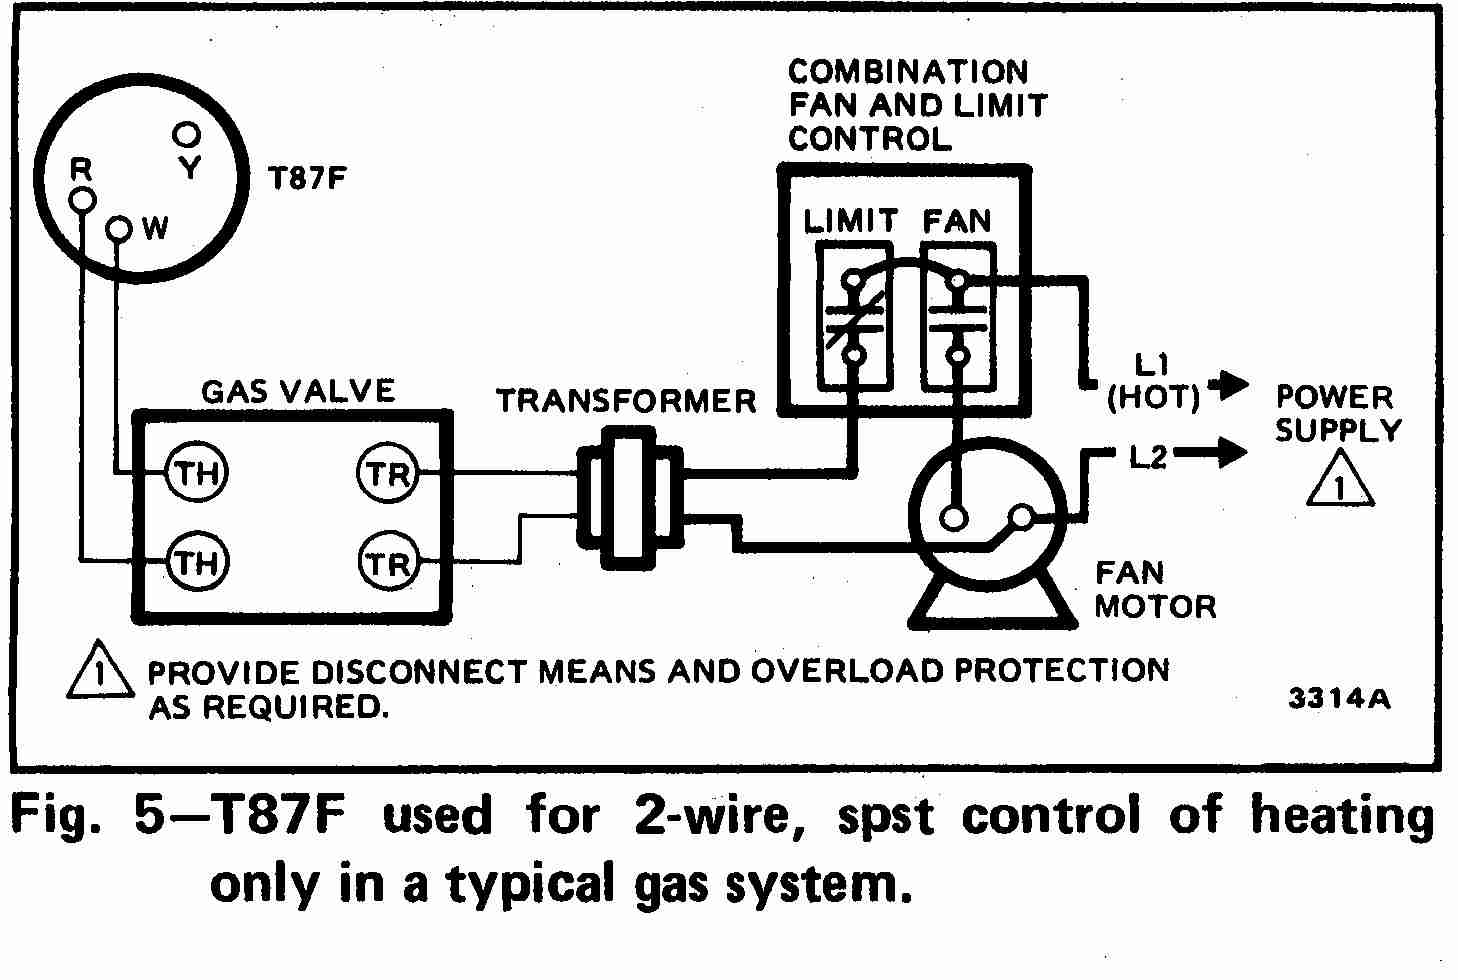 guide to wiring connections for room thermostats rh inspectapedia com 240V Thermostat Wiring Diagram 240V Thermostat Wiring Diagram